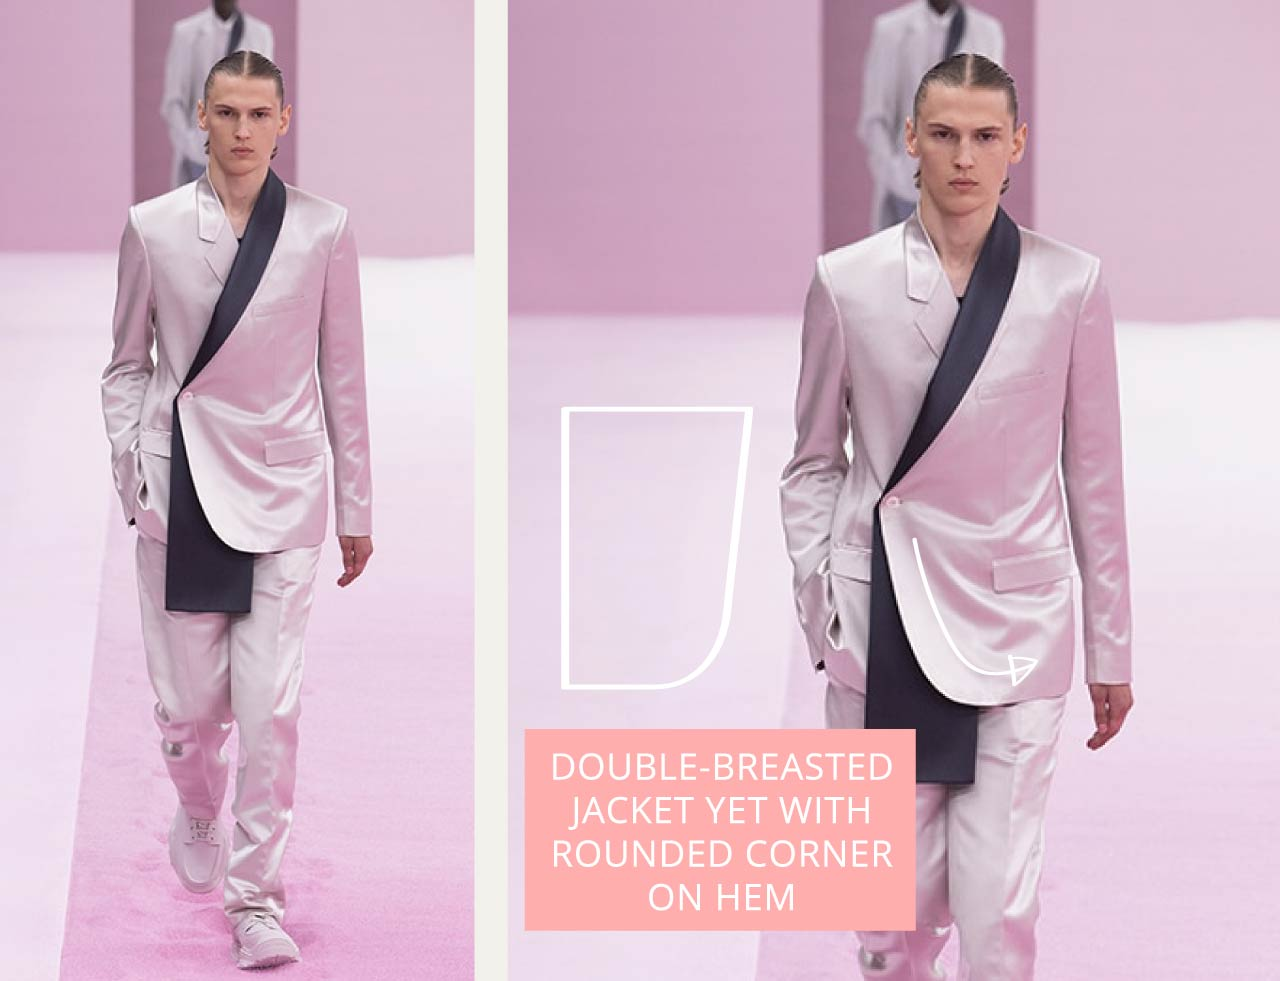 Tailored Jacket Hems - Straight or curved? | The Cutting Class. Dior Menswear SS20. Double-breasted jacket with curved front corner.